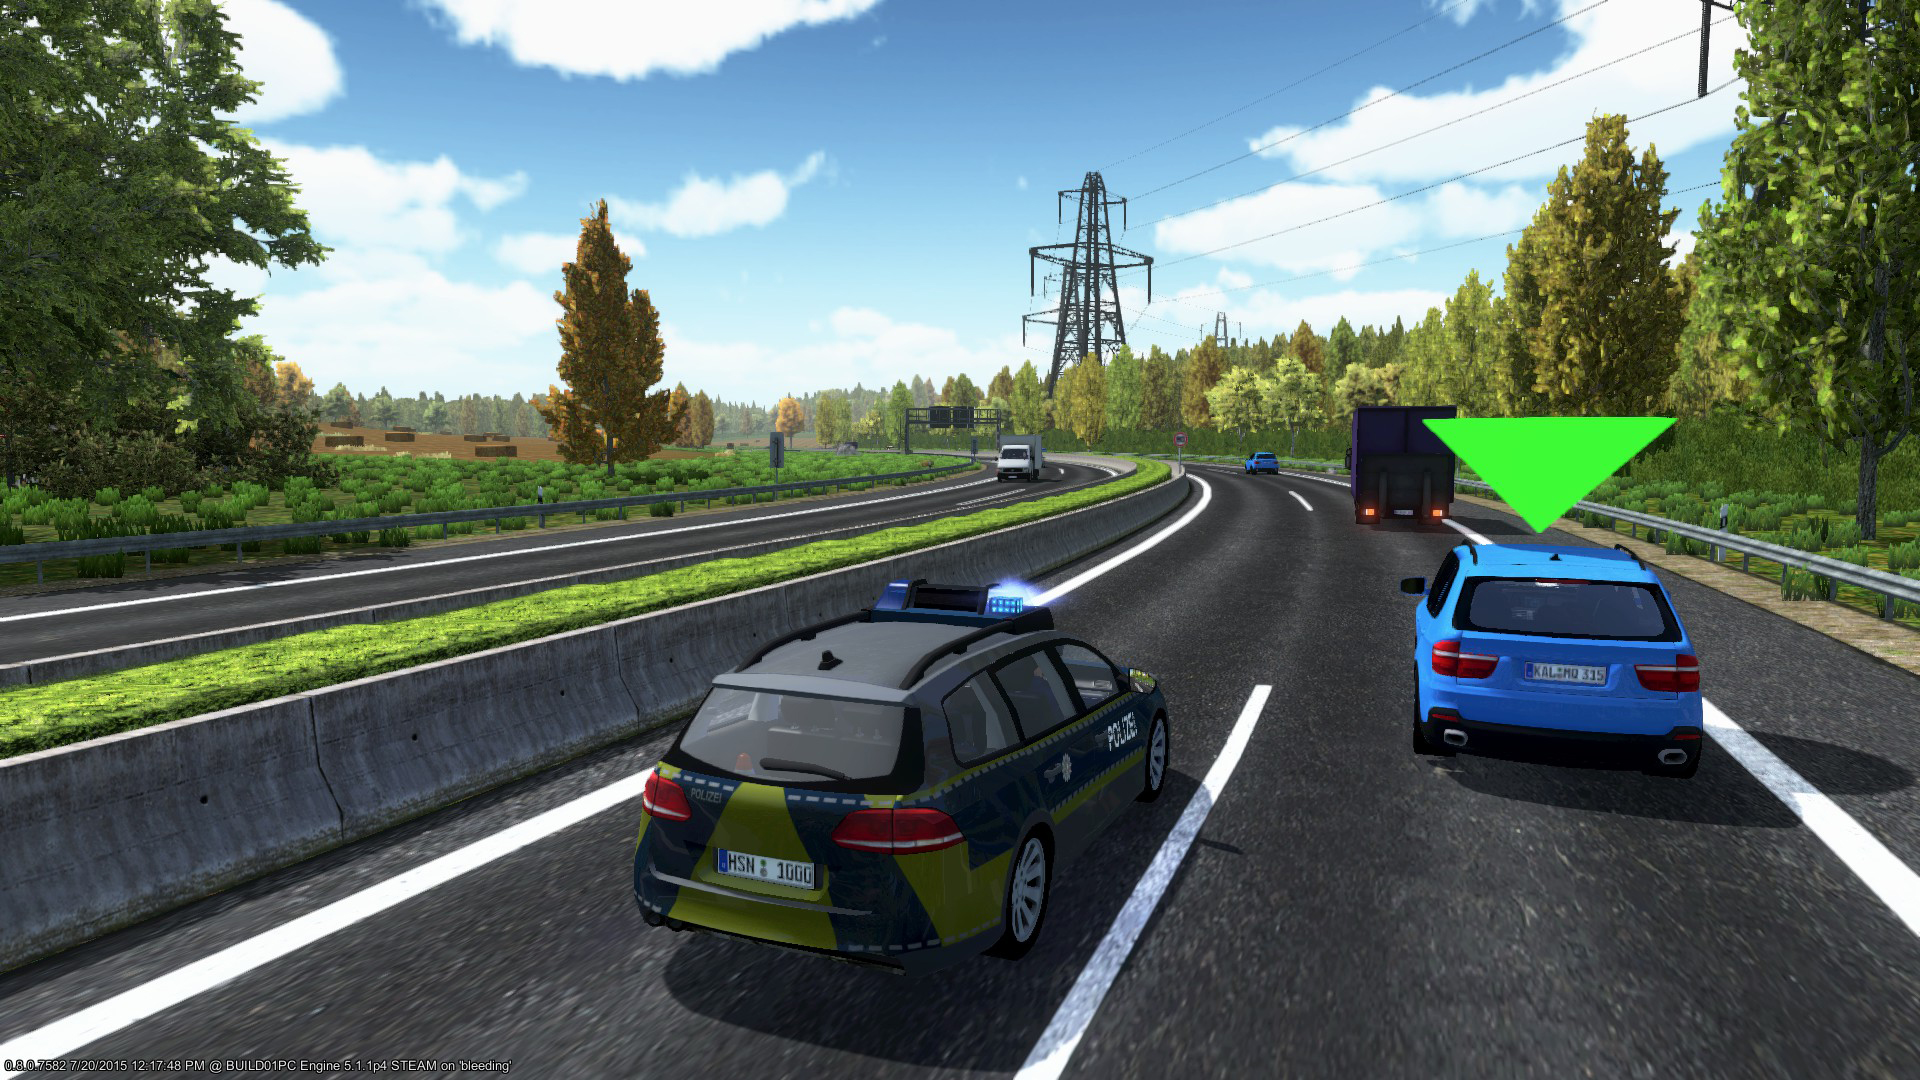 police simulator games pc free download